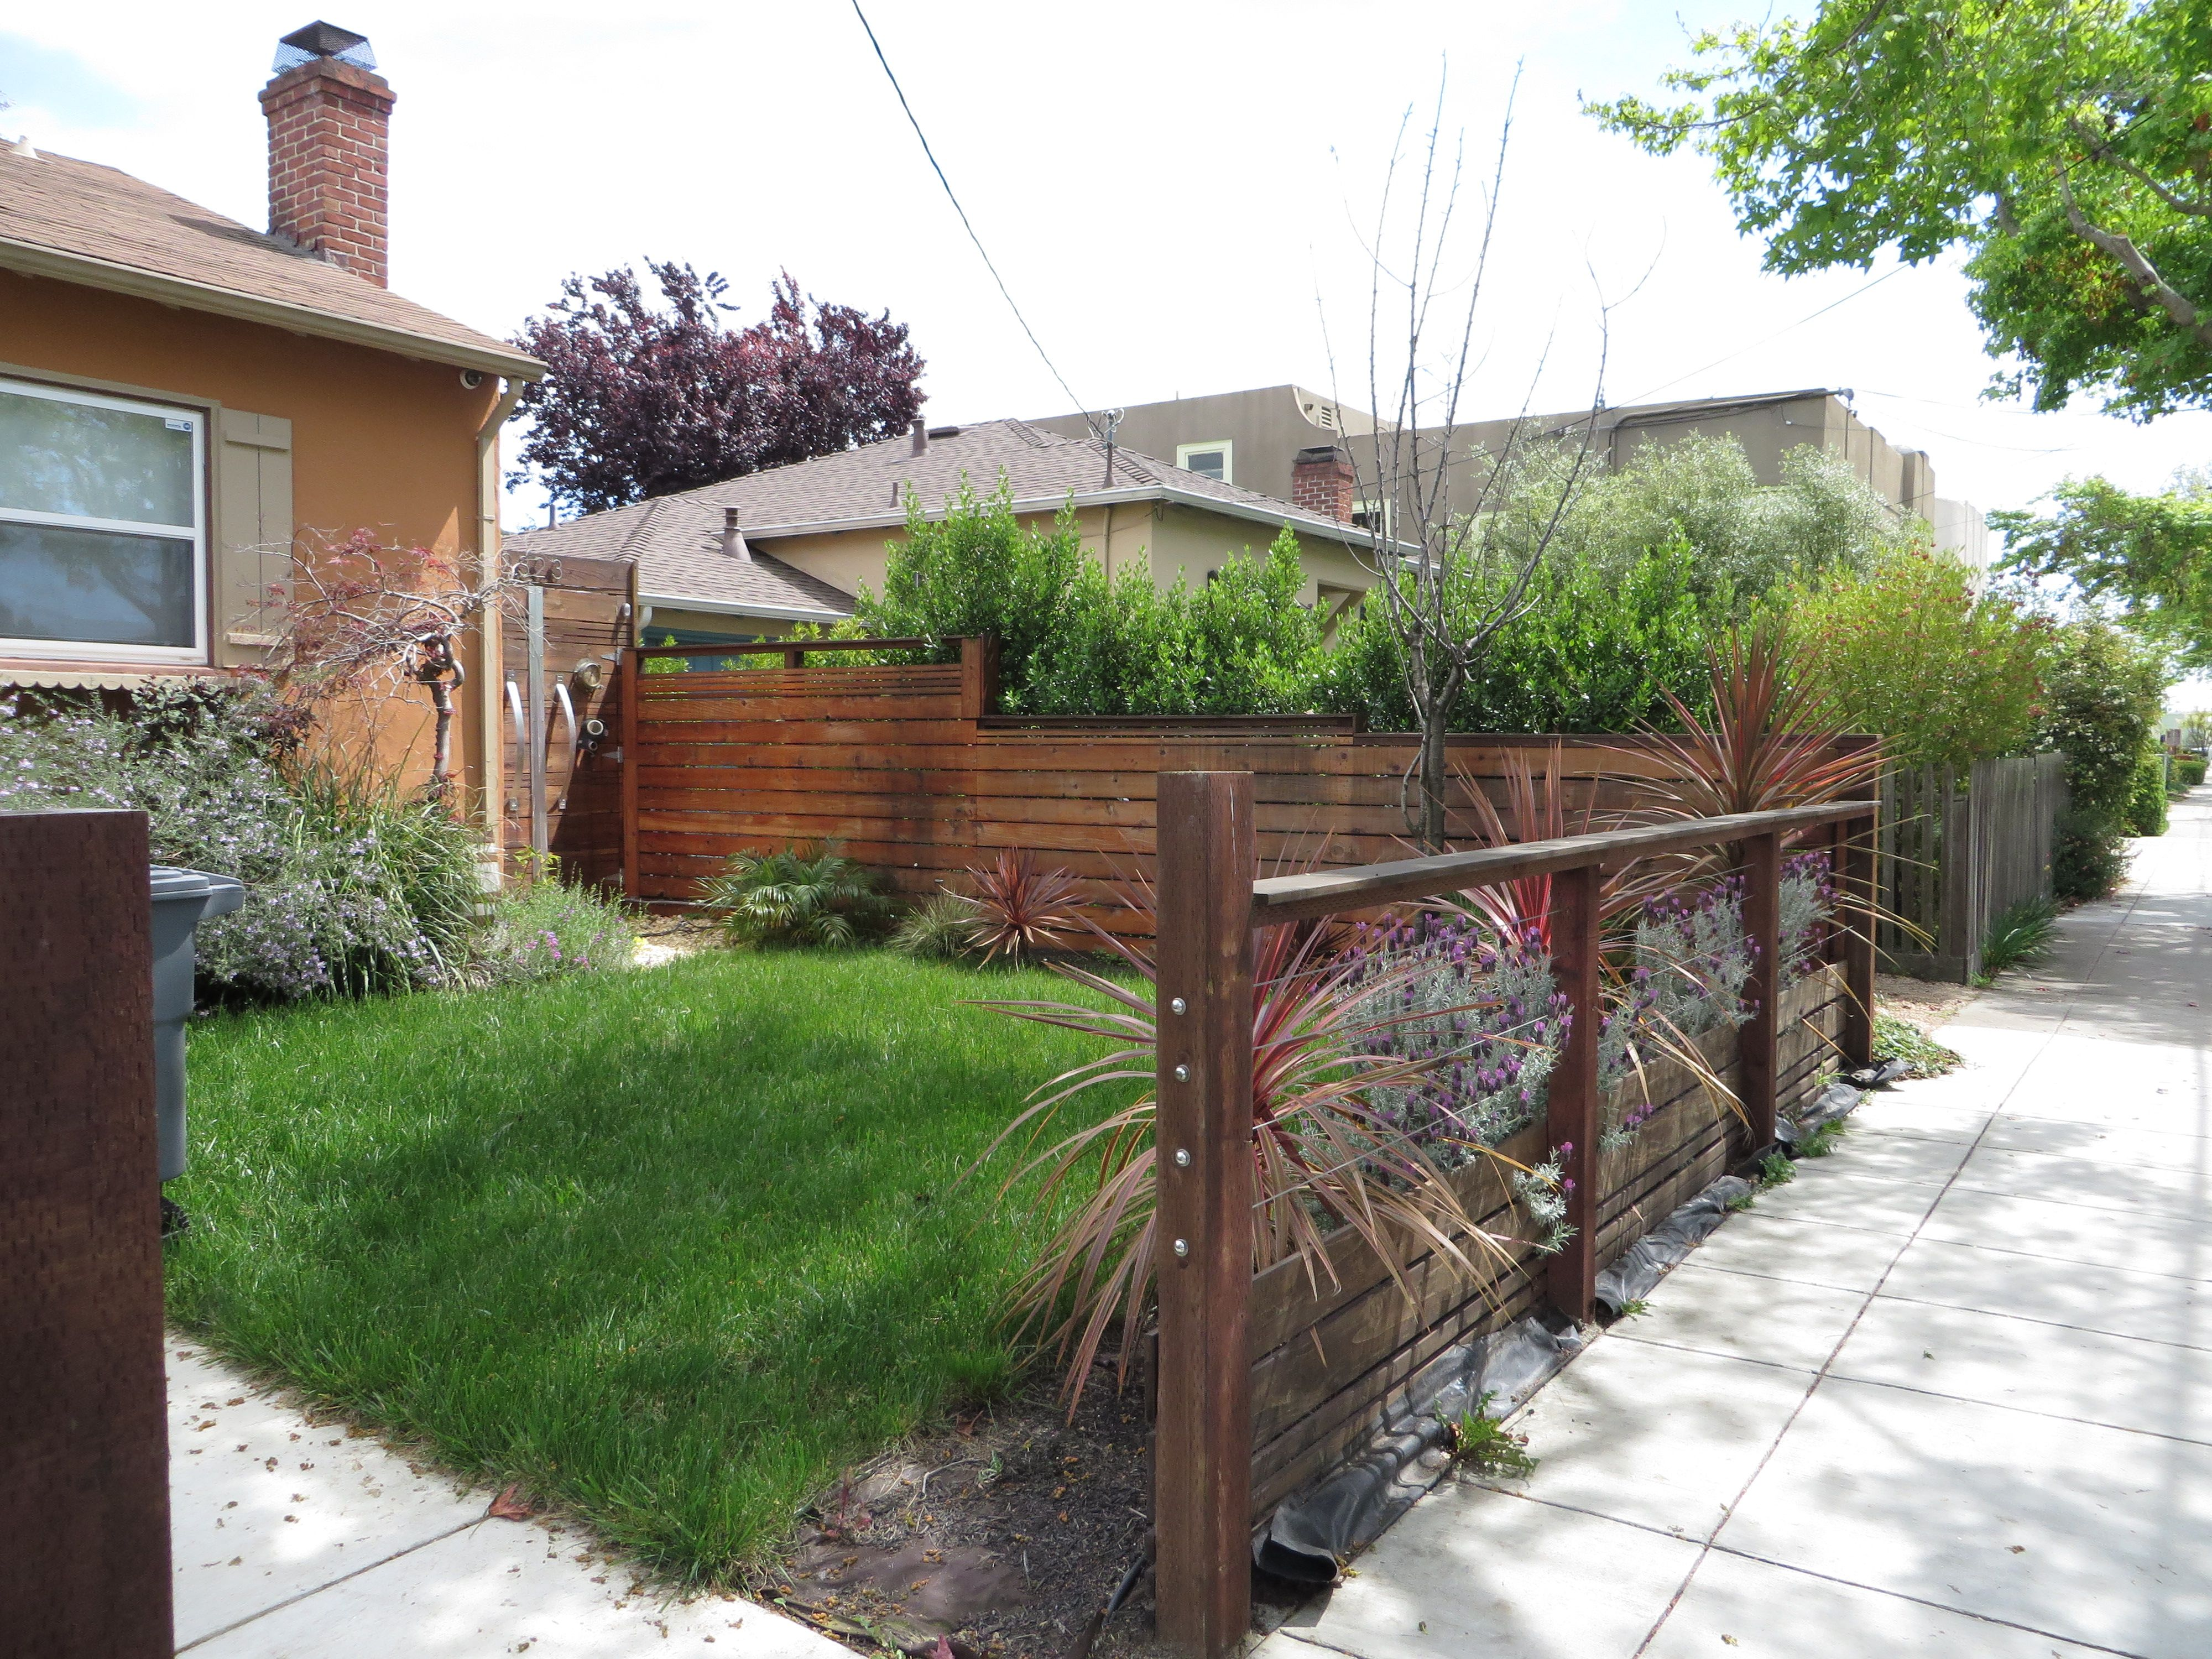 Modern Low Fence With Wood At Bottom Horizontal Wires And Nice Metal Details House Design Patio